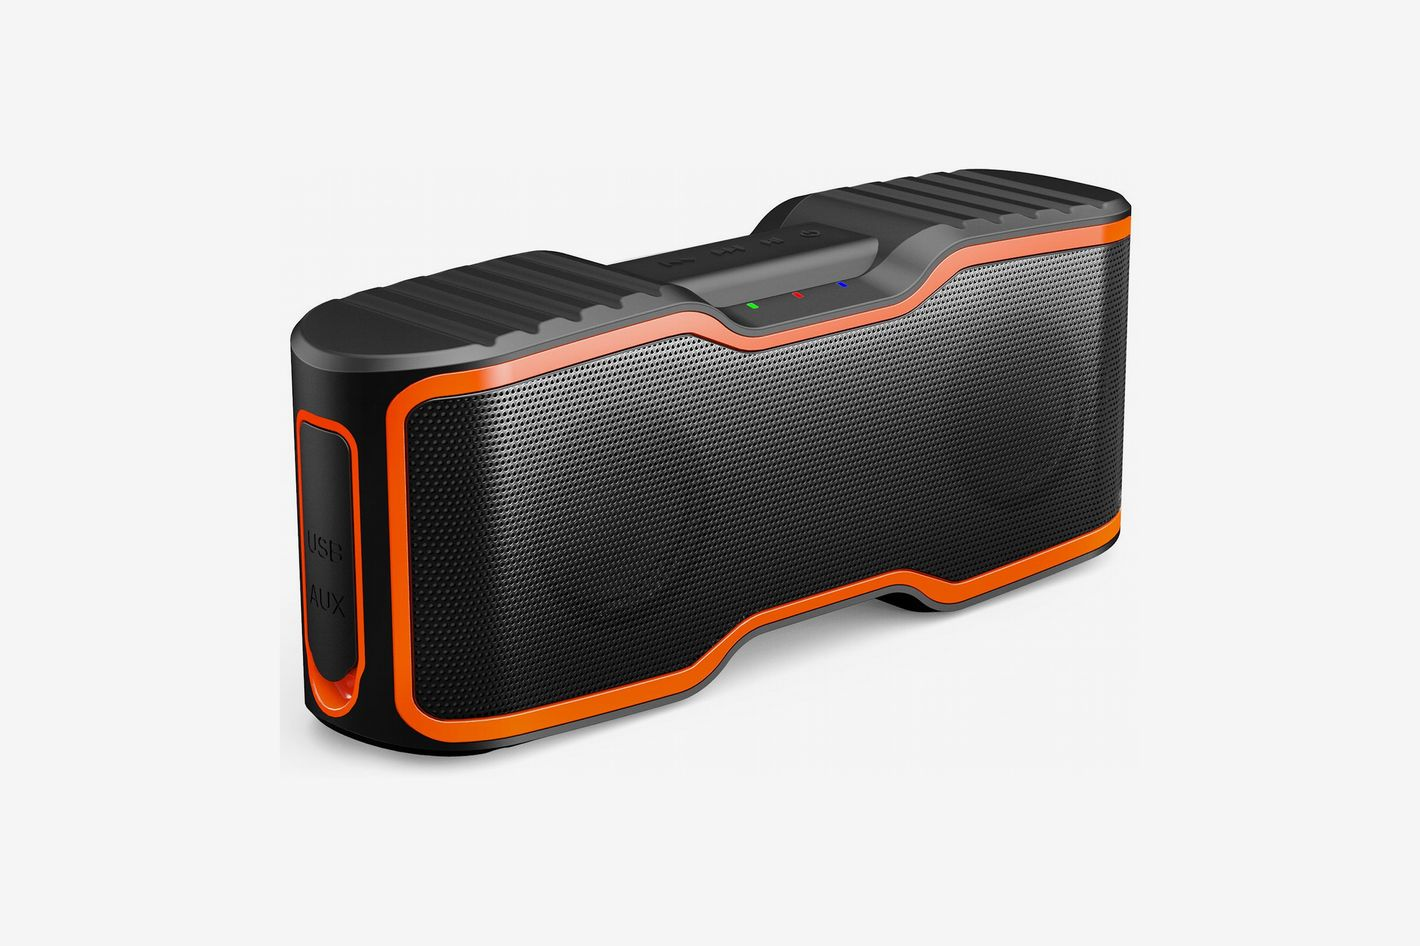 13 Best Portable Speakers 2019